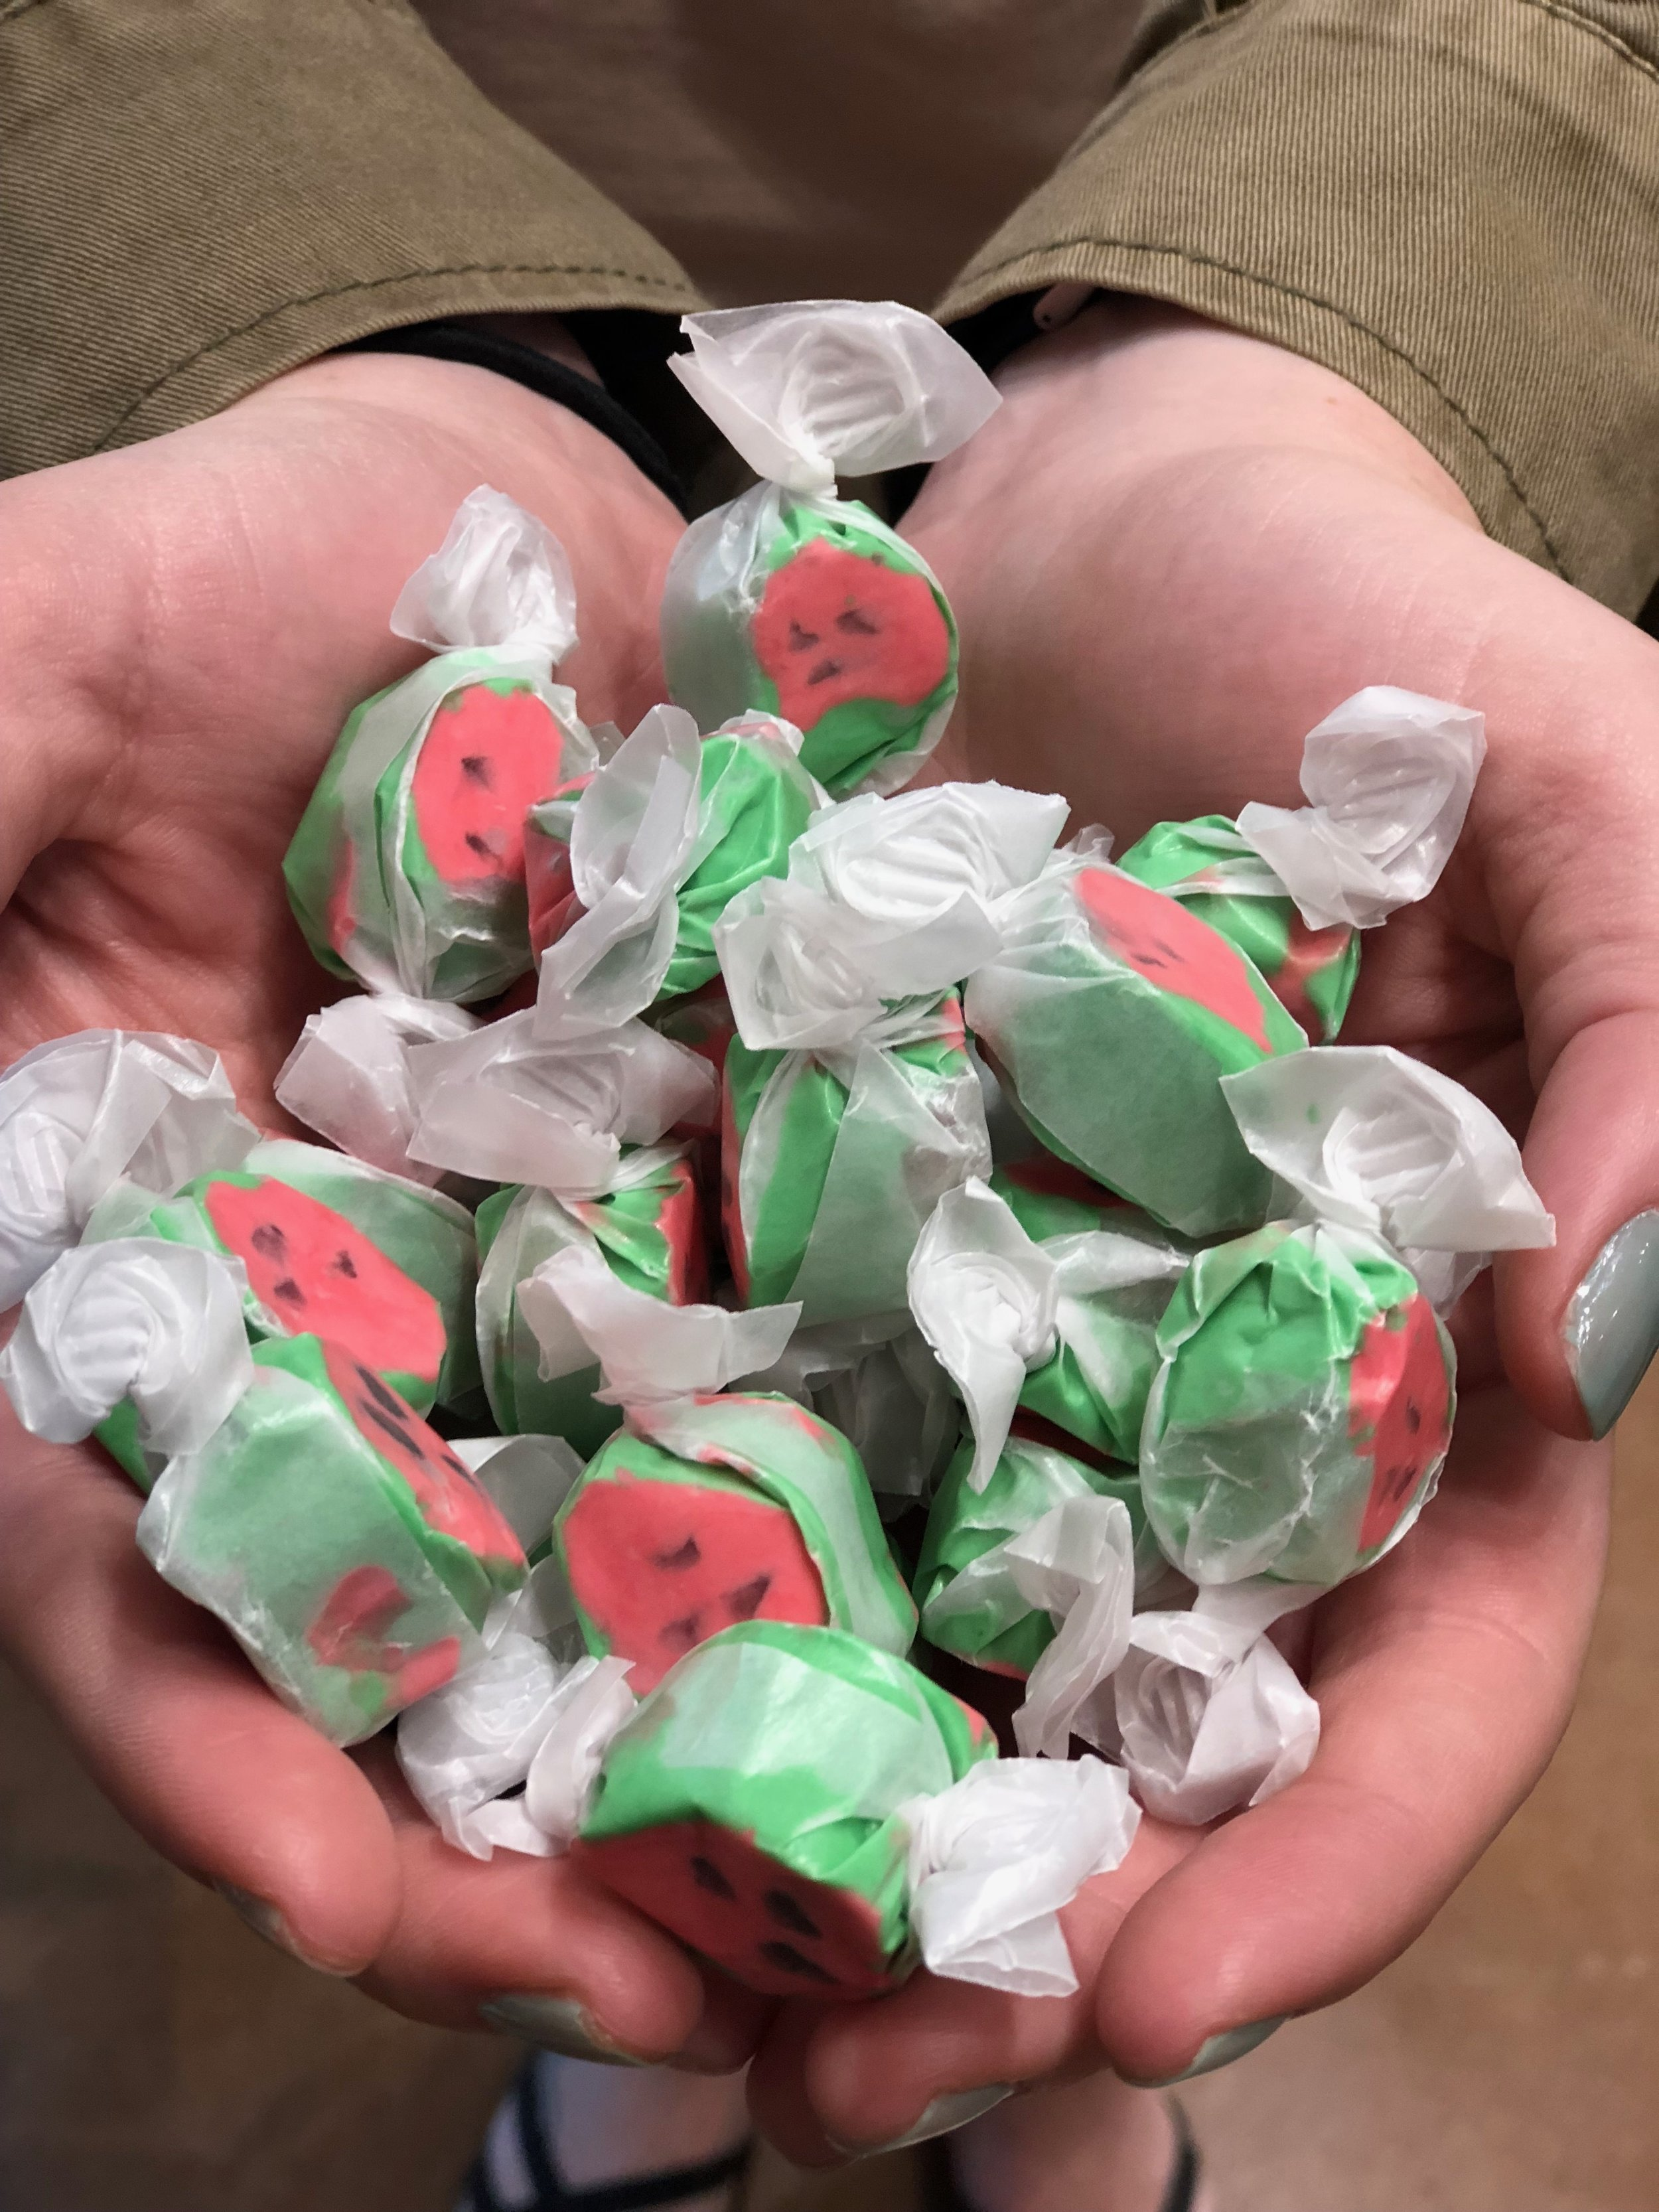 Delicious Salt Water TAffy - Select from 20 different flavors of the best salt water taffy on the Shore!